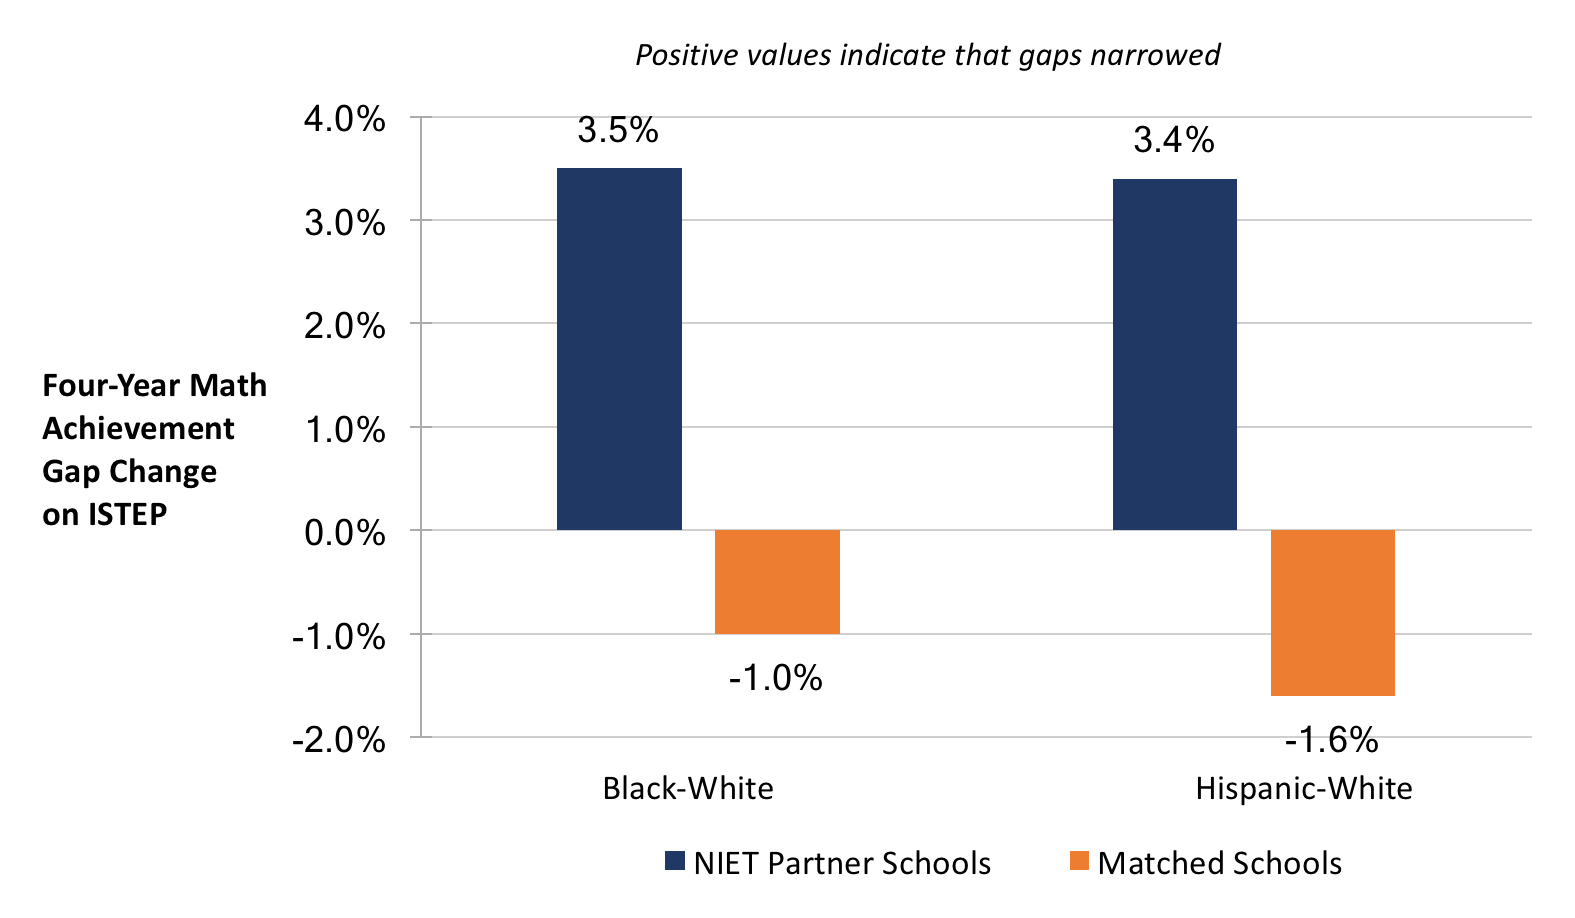 niet indiana partners outperform matched schools